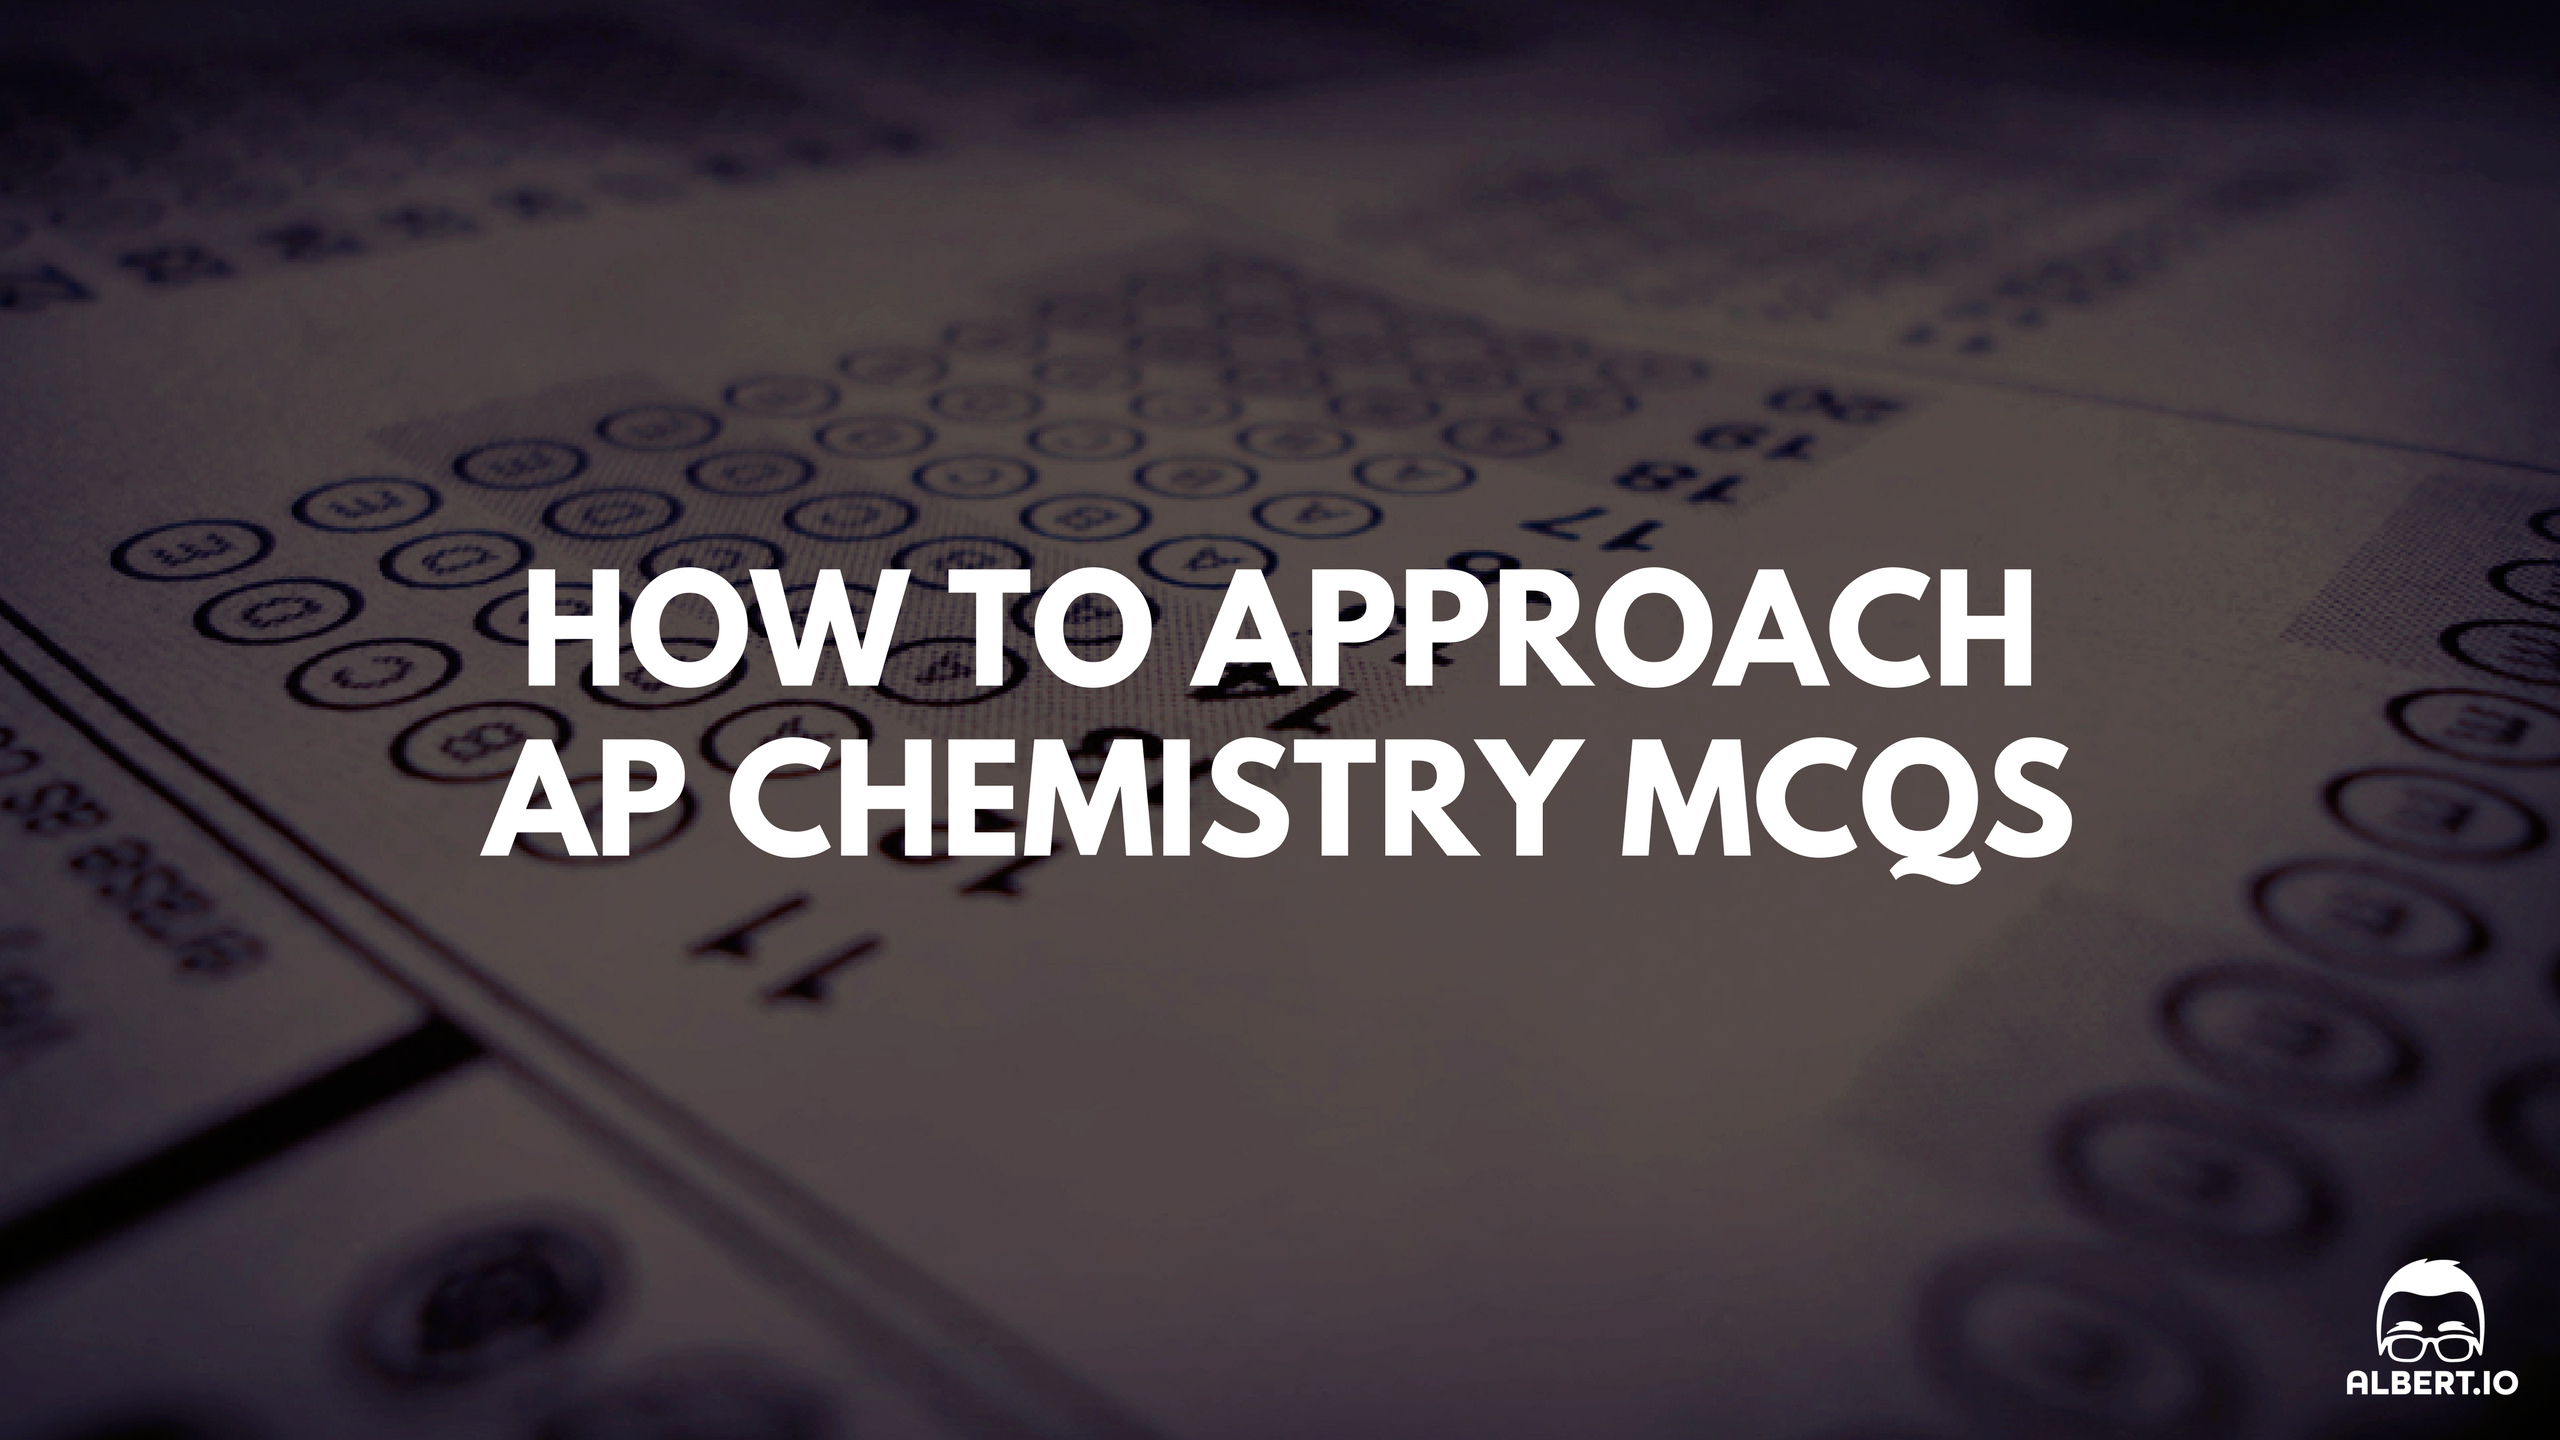 How to Approach AP Chemistry Multiple-Choice Questions | Albert.io